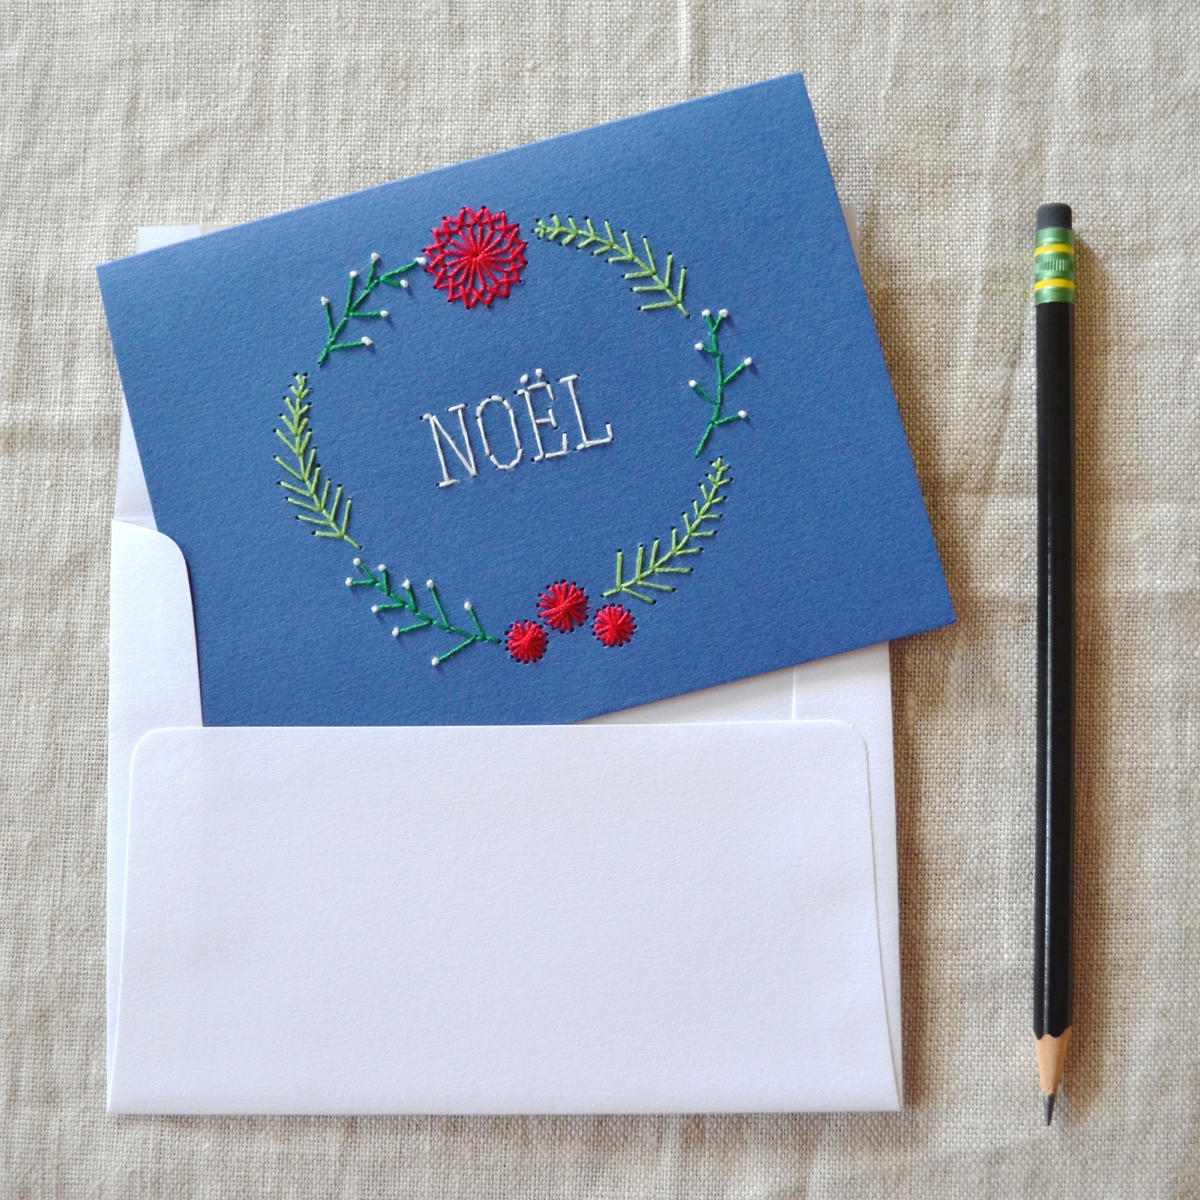 Koto   Hand embroidered art and paper goods